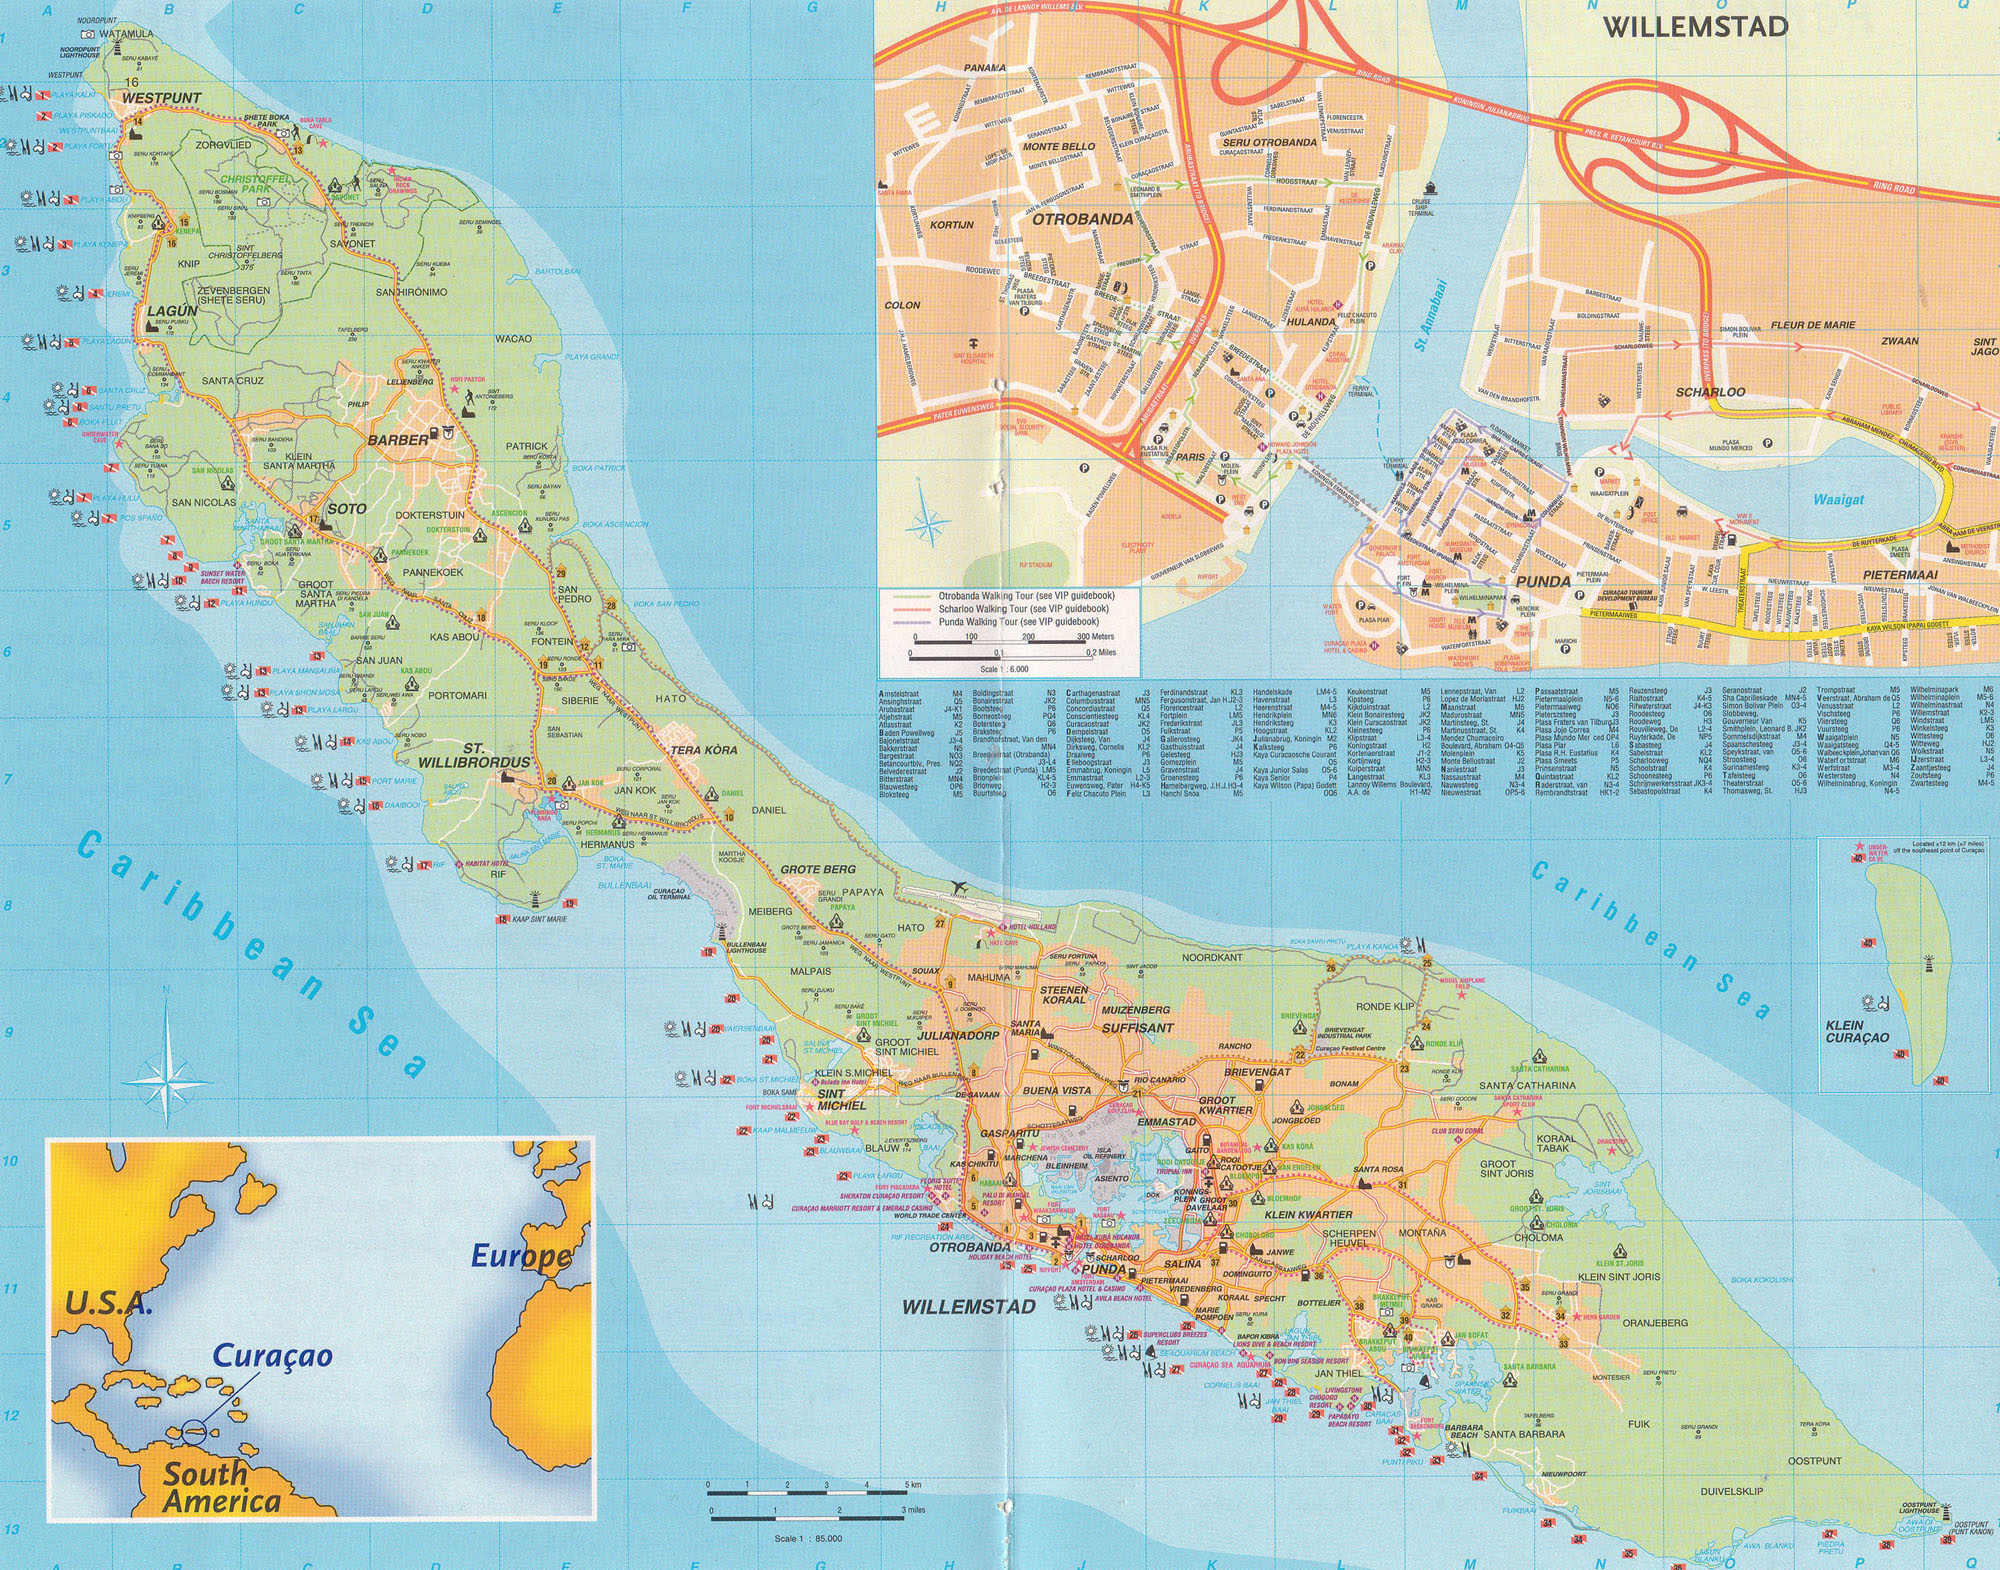 Maps Of Netherlands Antilles Map Library Maps Of The World - Map of netherlands antilles world